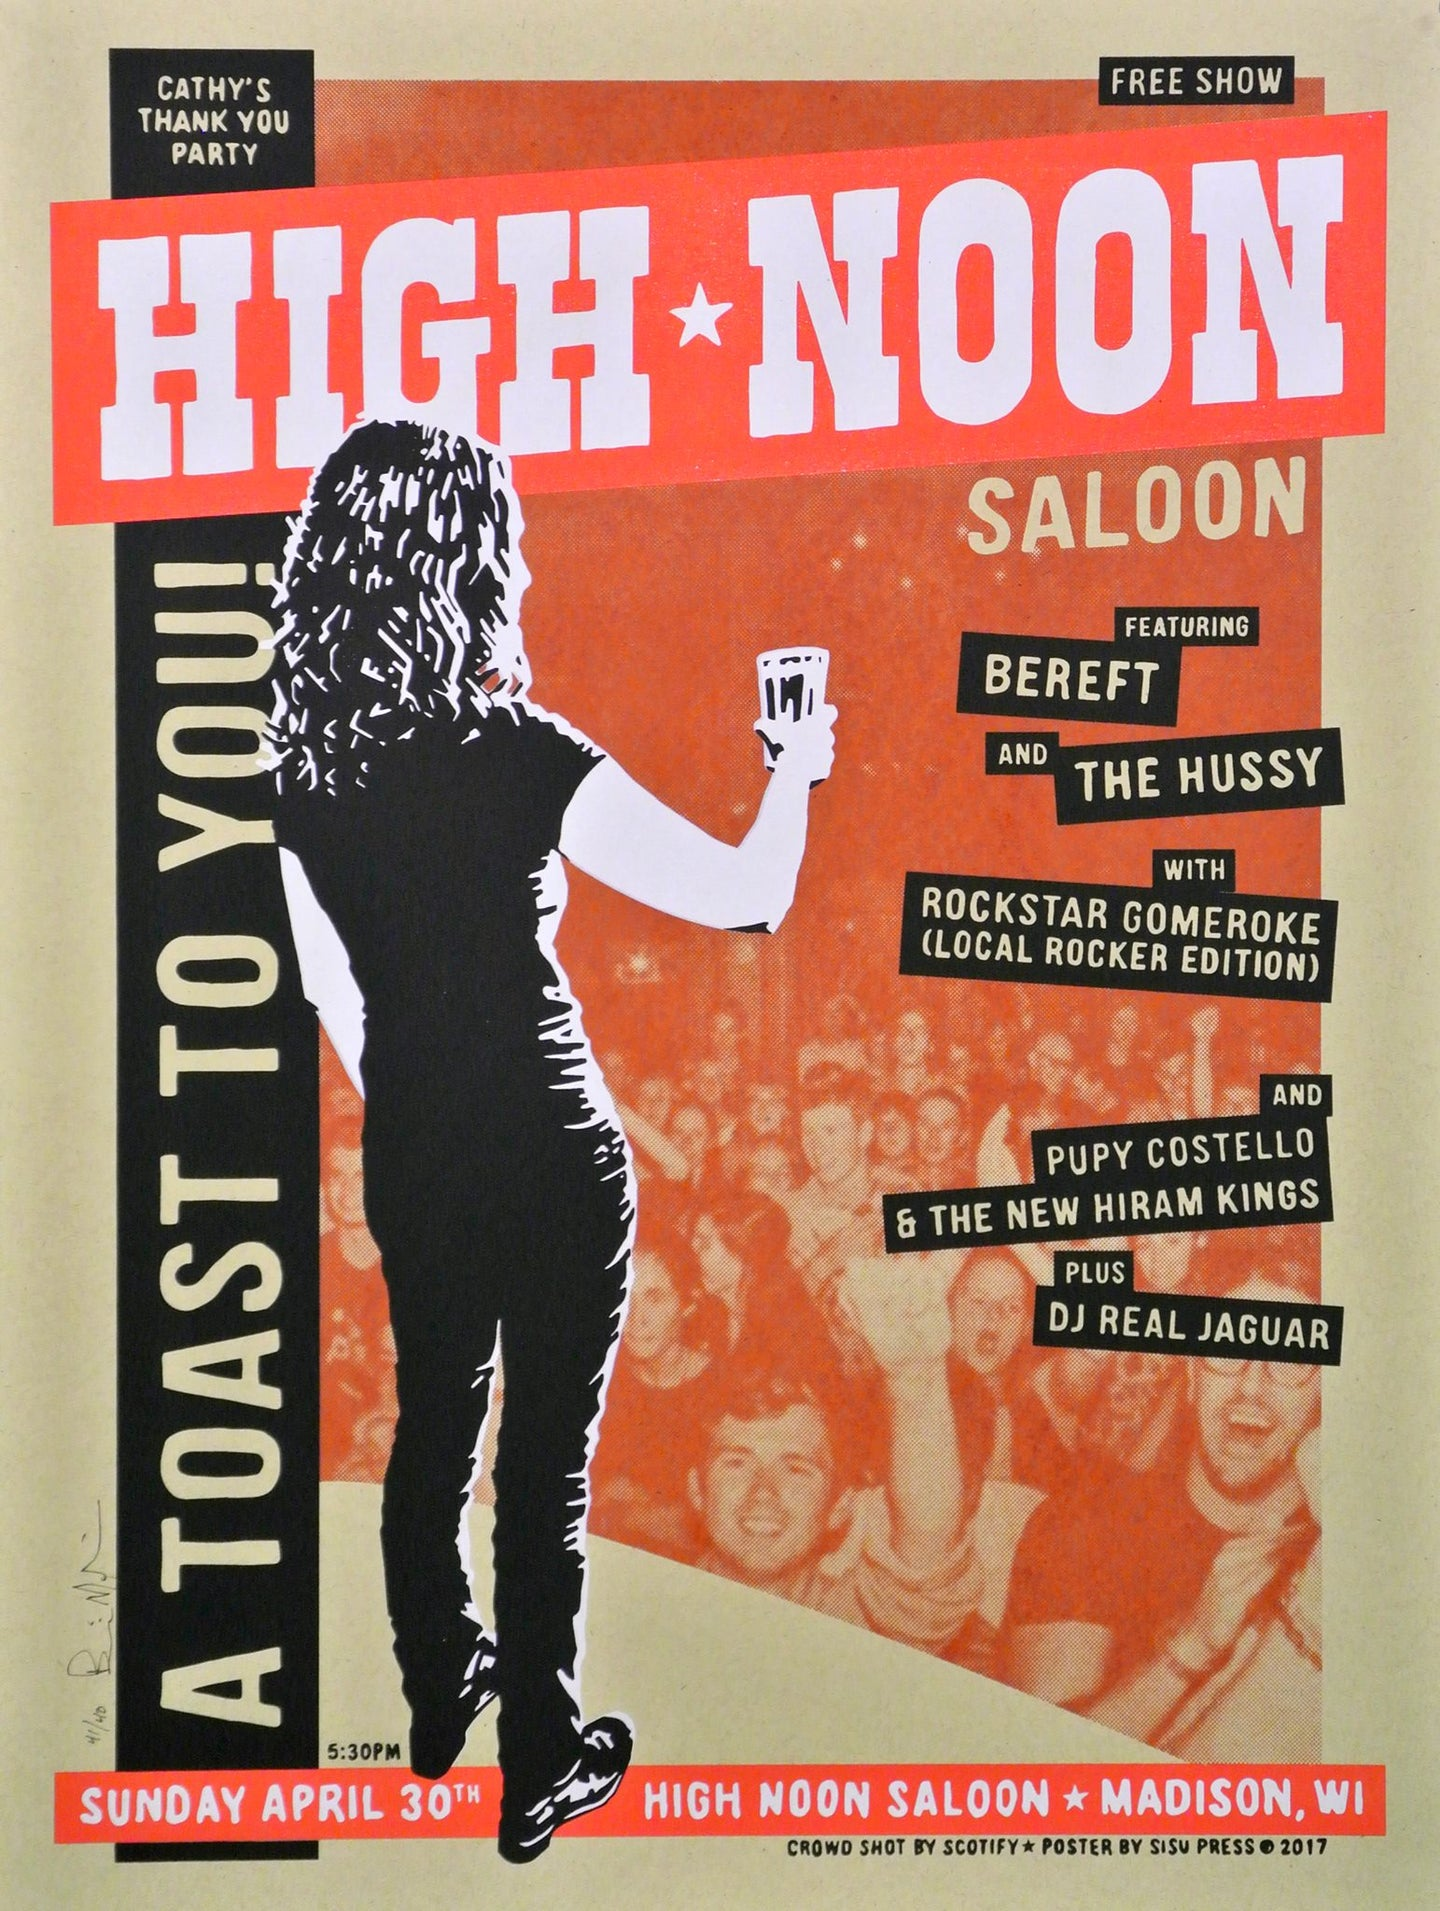 Farewell Cathy at High Noon Saloon 2017